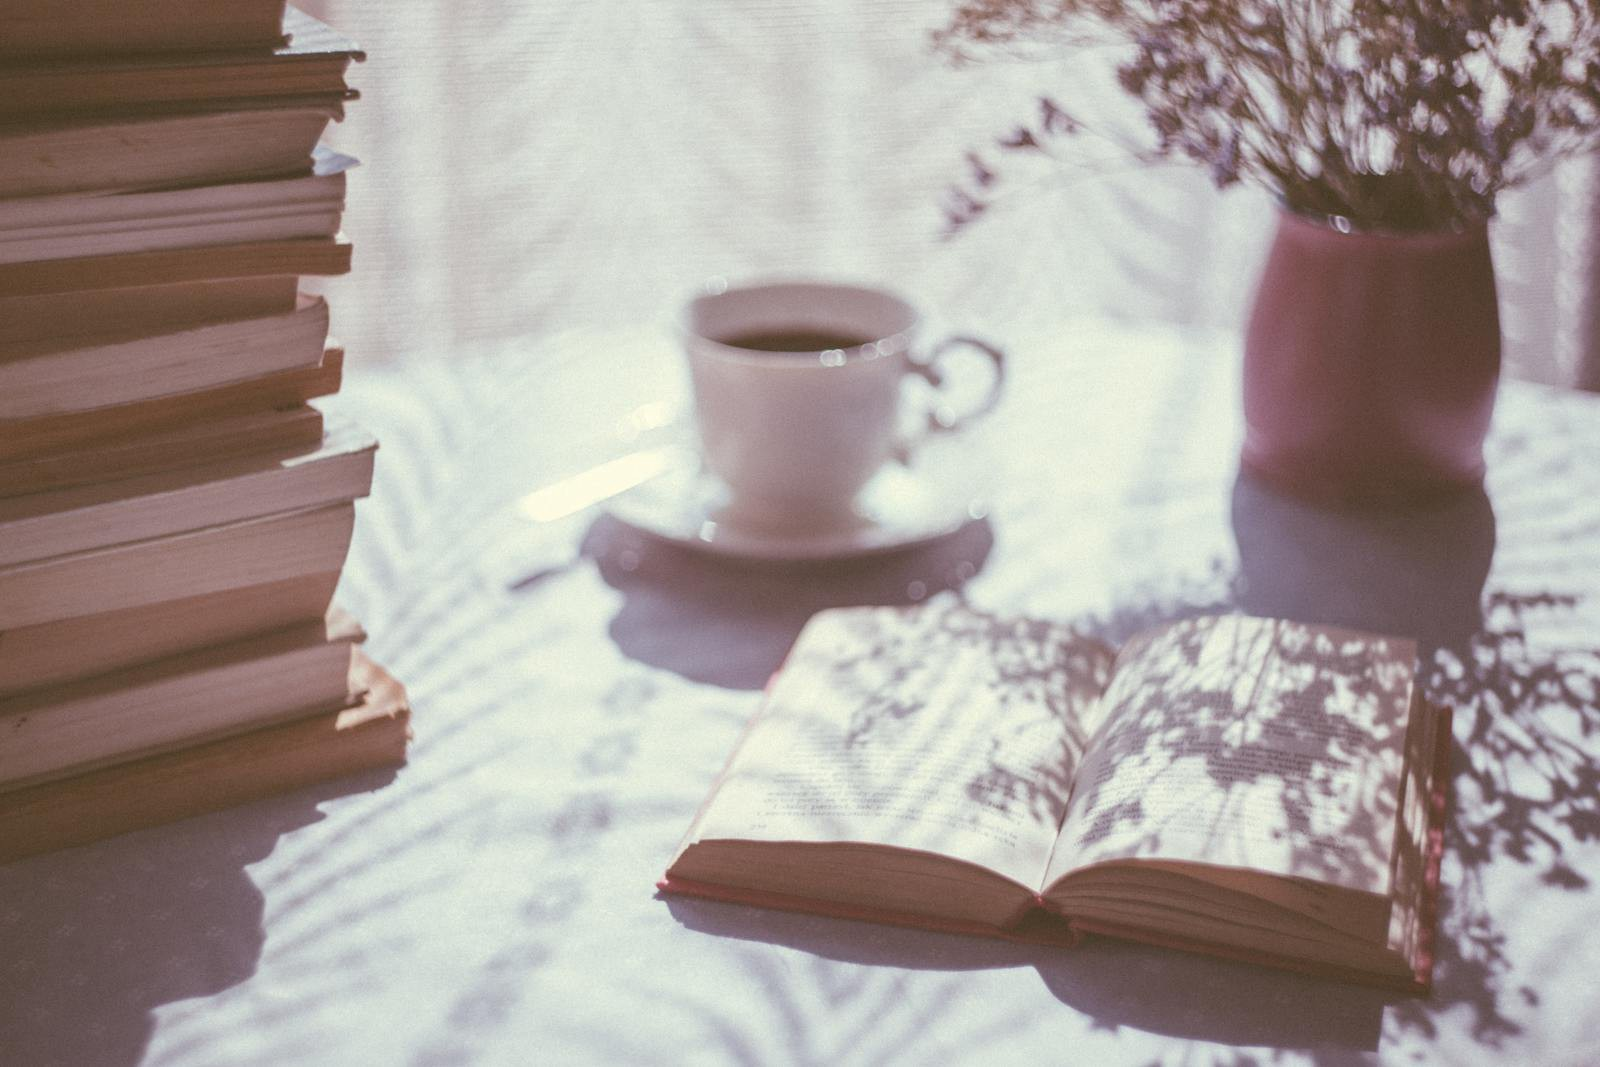 A coffee table next to a bright window, on top of which sits a stack of books, a cup of tea, an open book, and a vase.